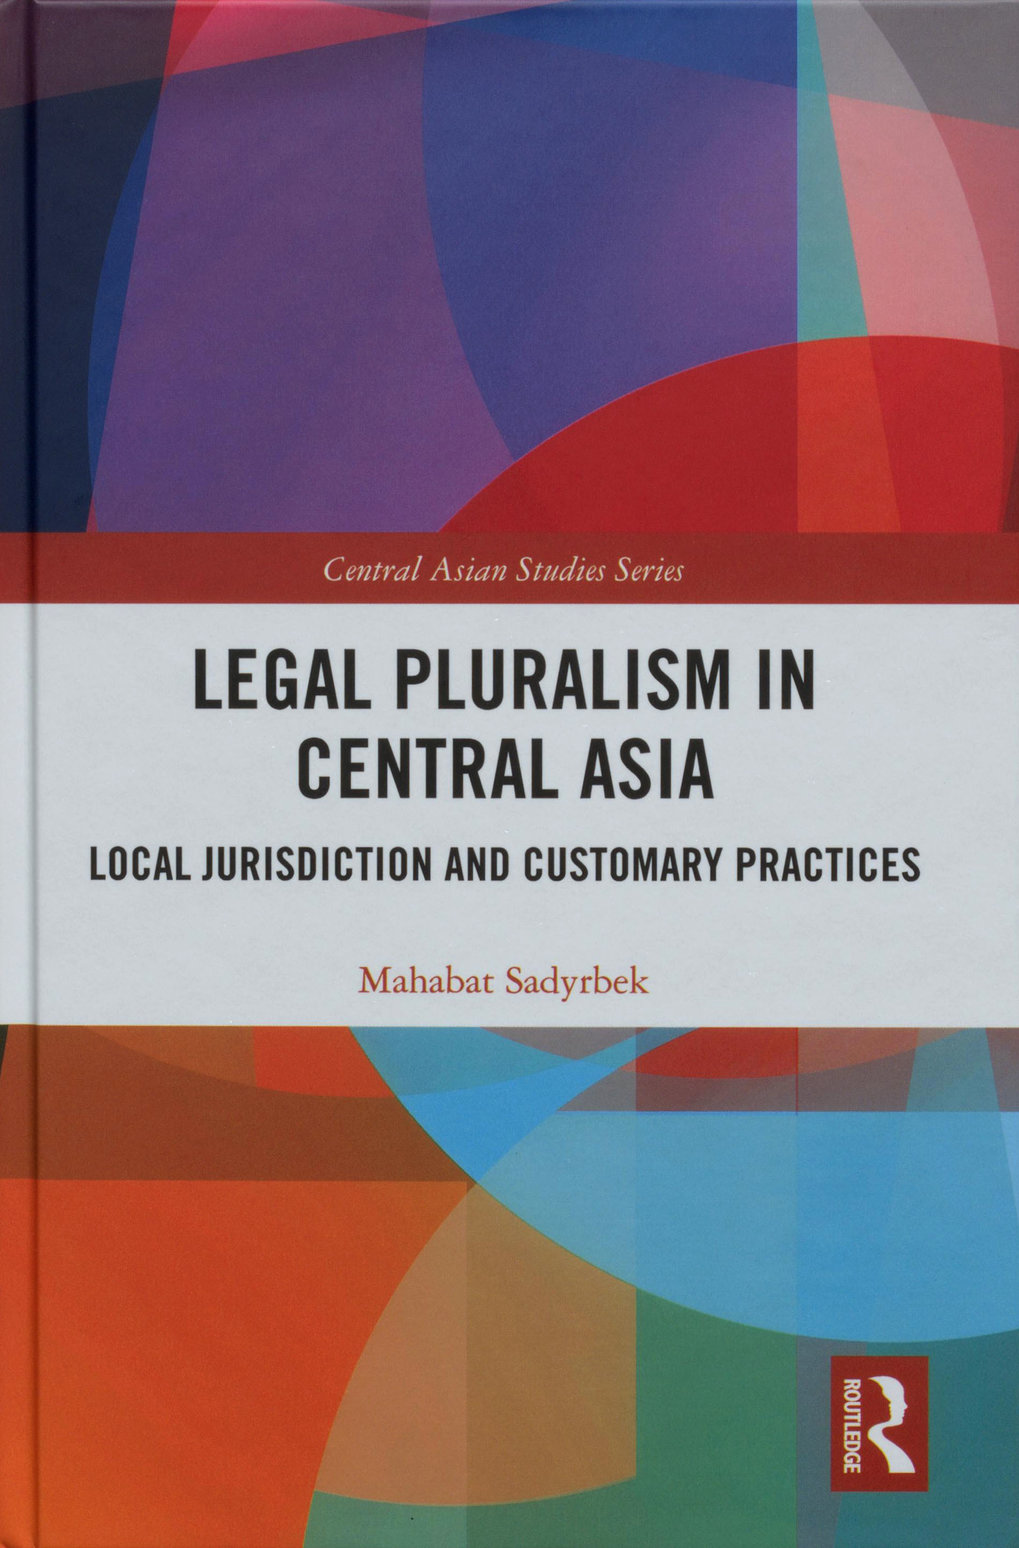 Legal pluralism in Central Asia. Local jurisdiction and customary practices